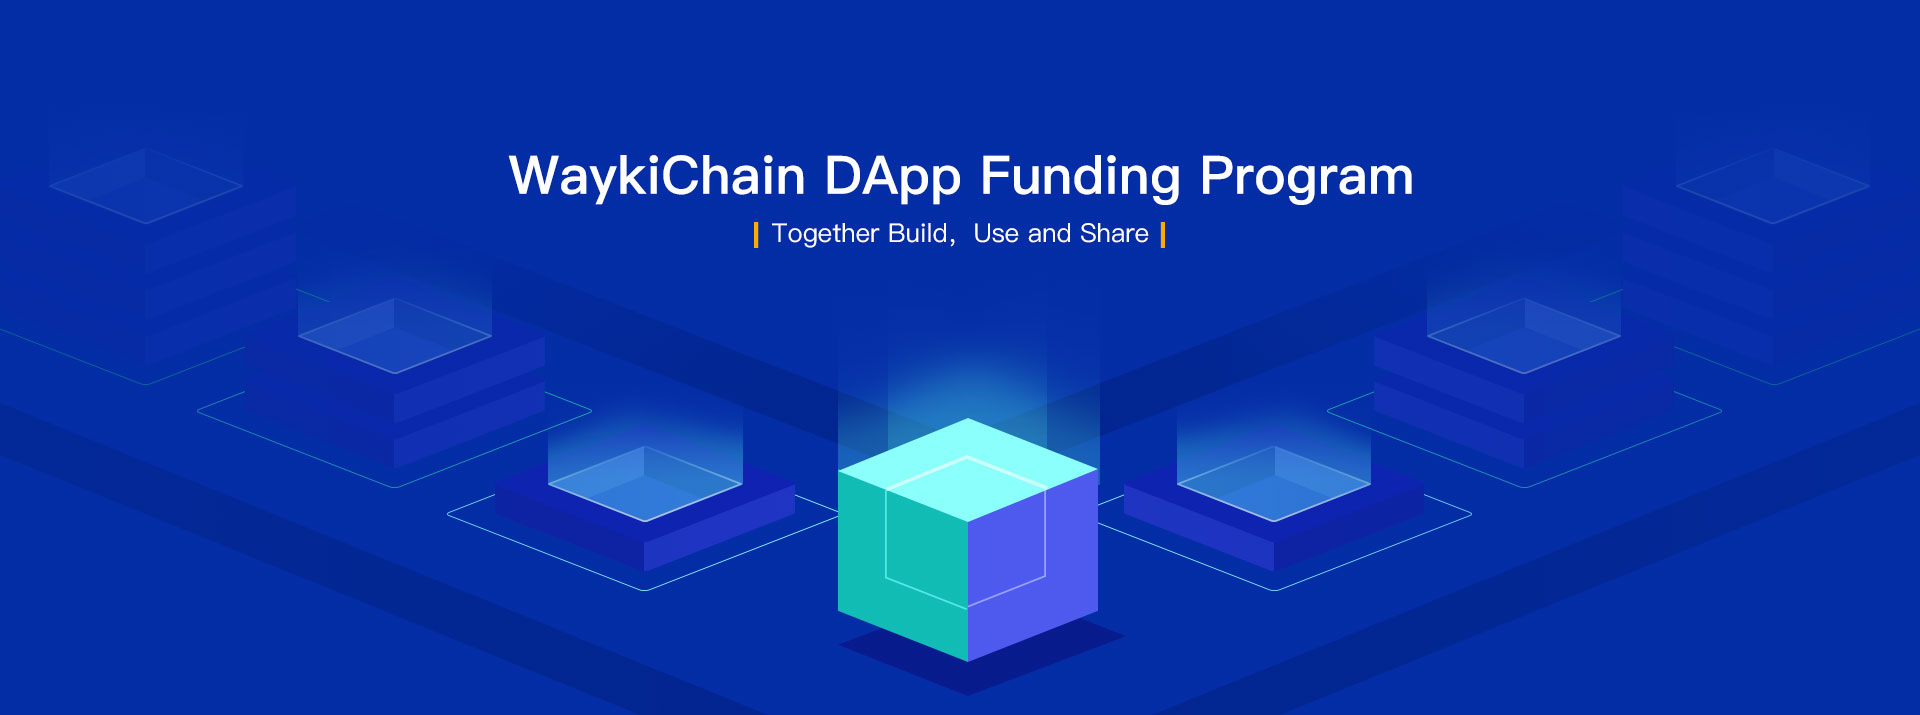 waykichain dapp funding program